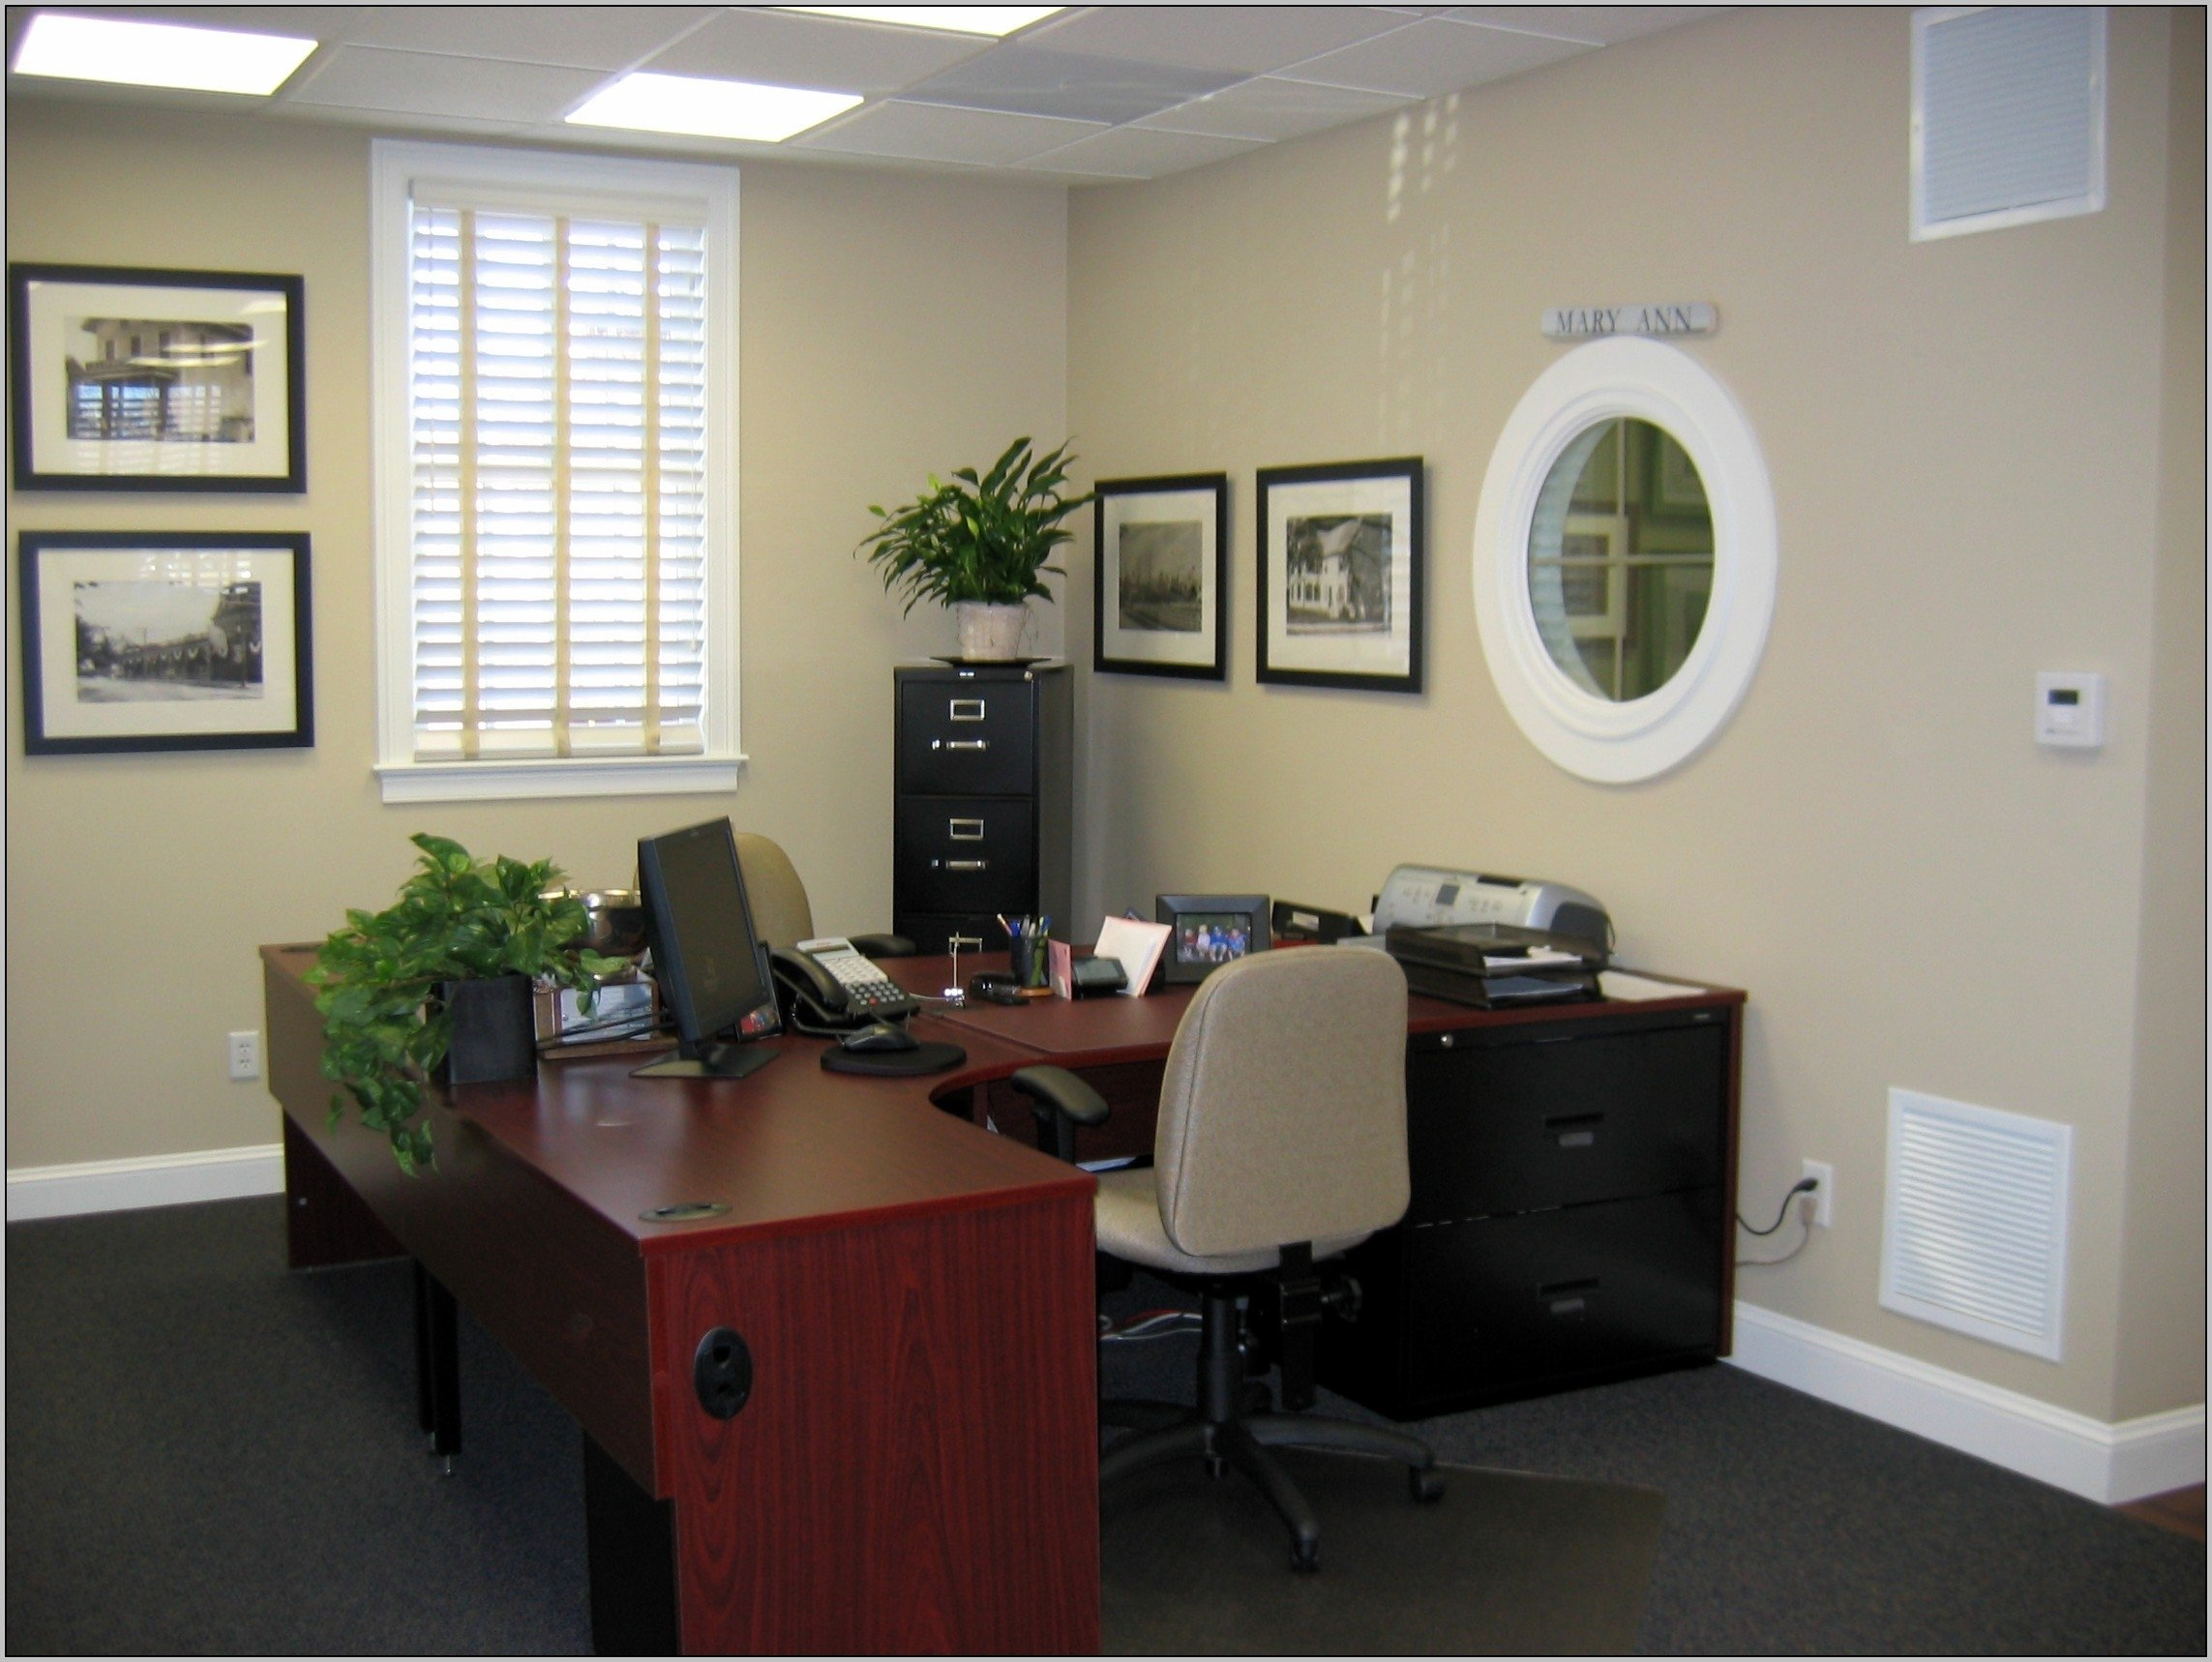 10 Nice Home Office Paint Color Ideas amazing of top best paint color for home office with offi 5787 2020